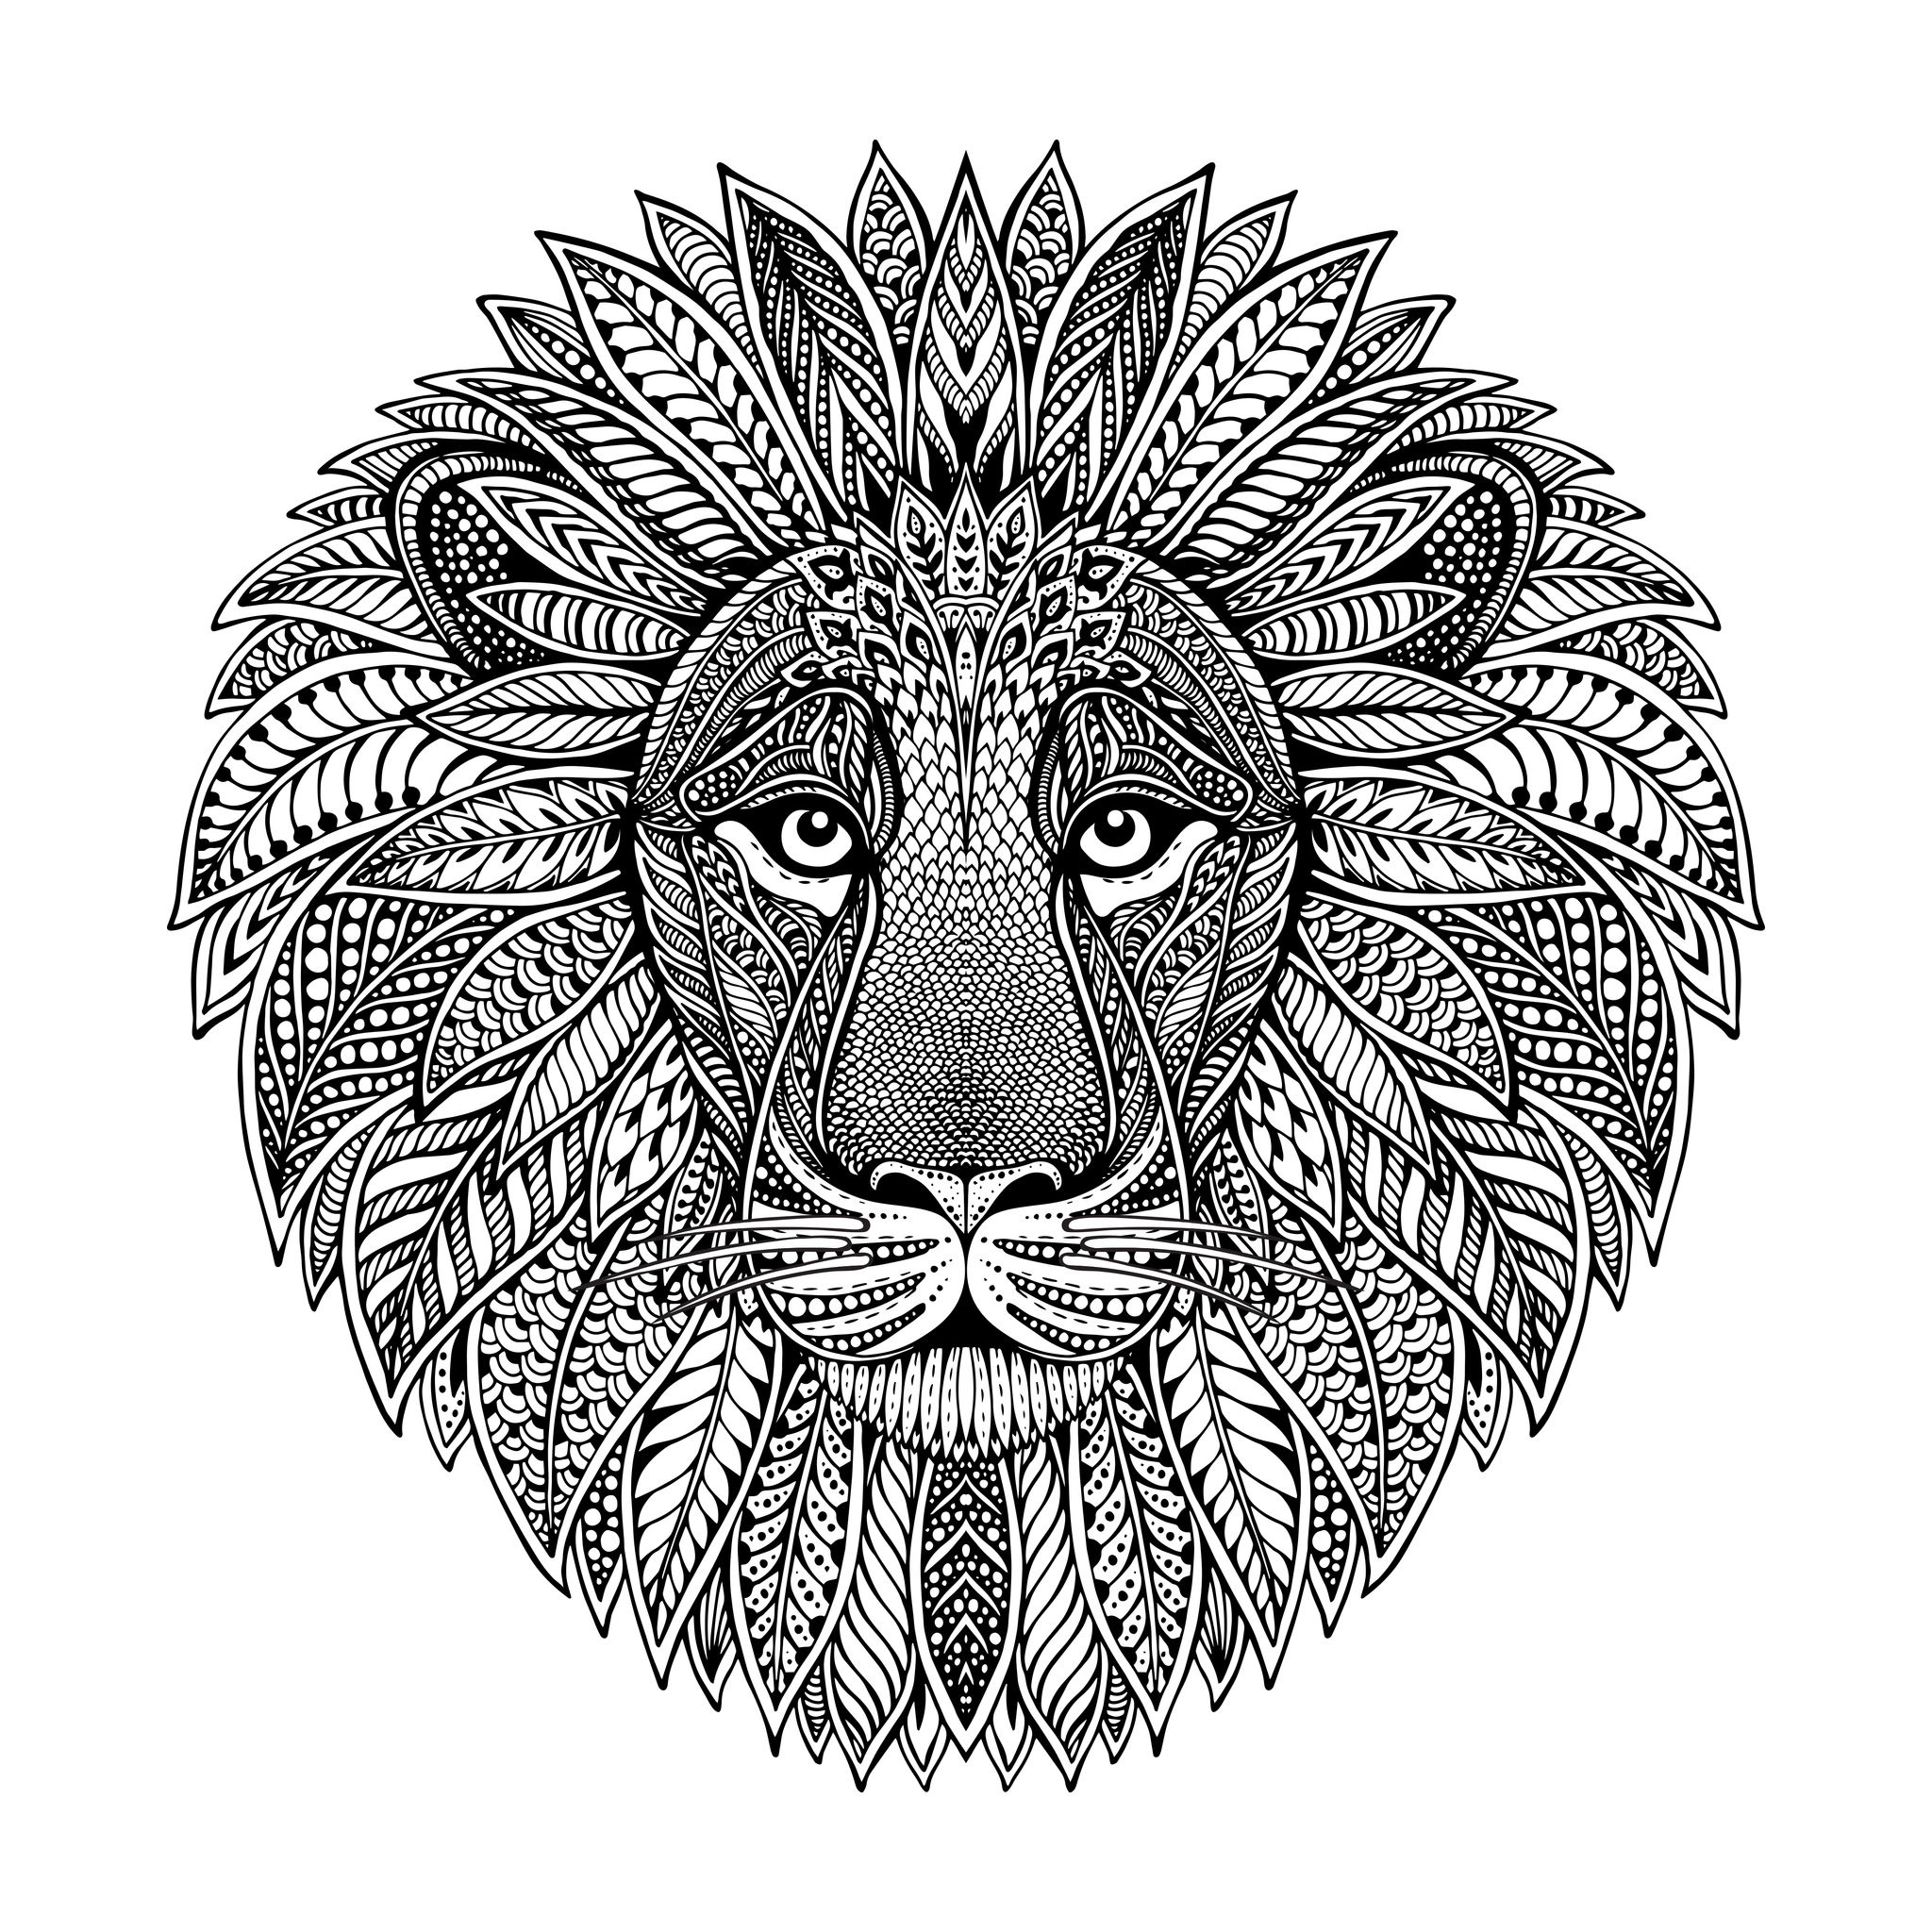 tete de lion style mandala lions coloriages difficiles pour adultes. Black Bedroom Furniture Sets. Home Design Ideas